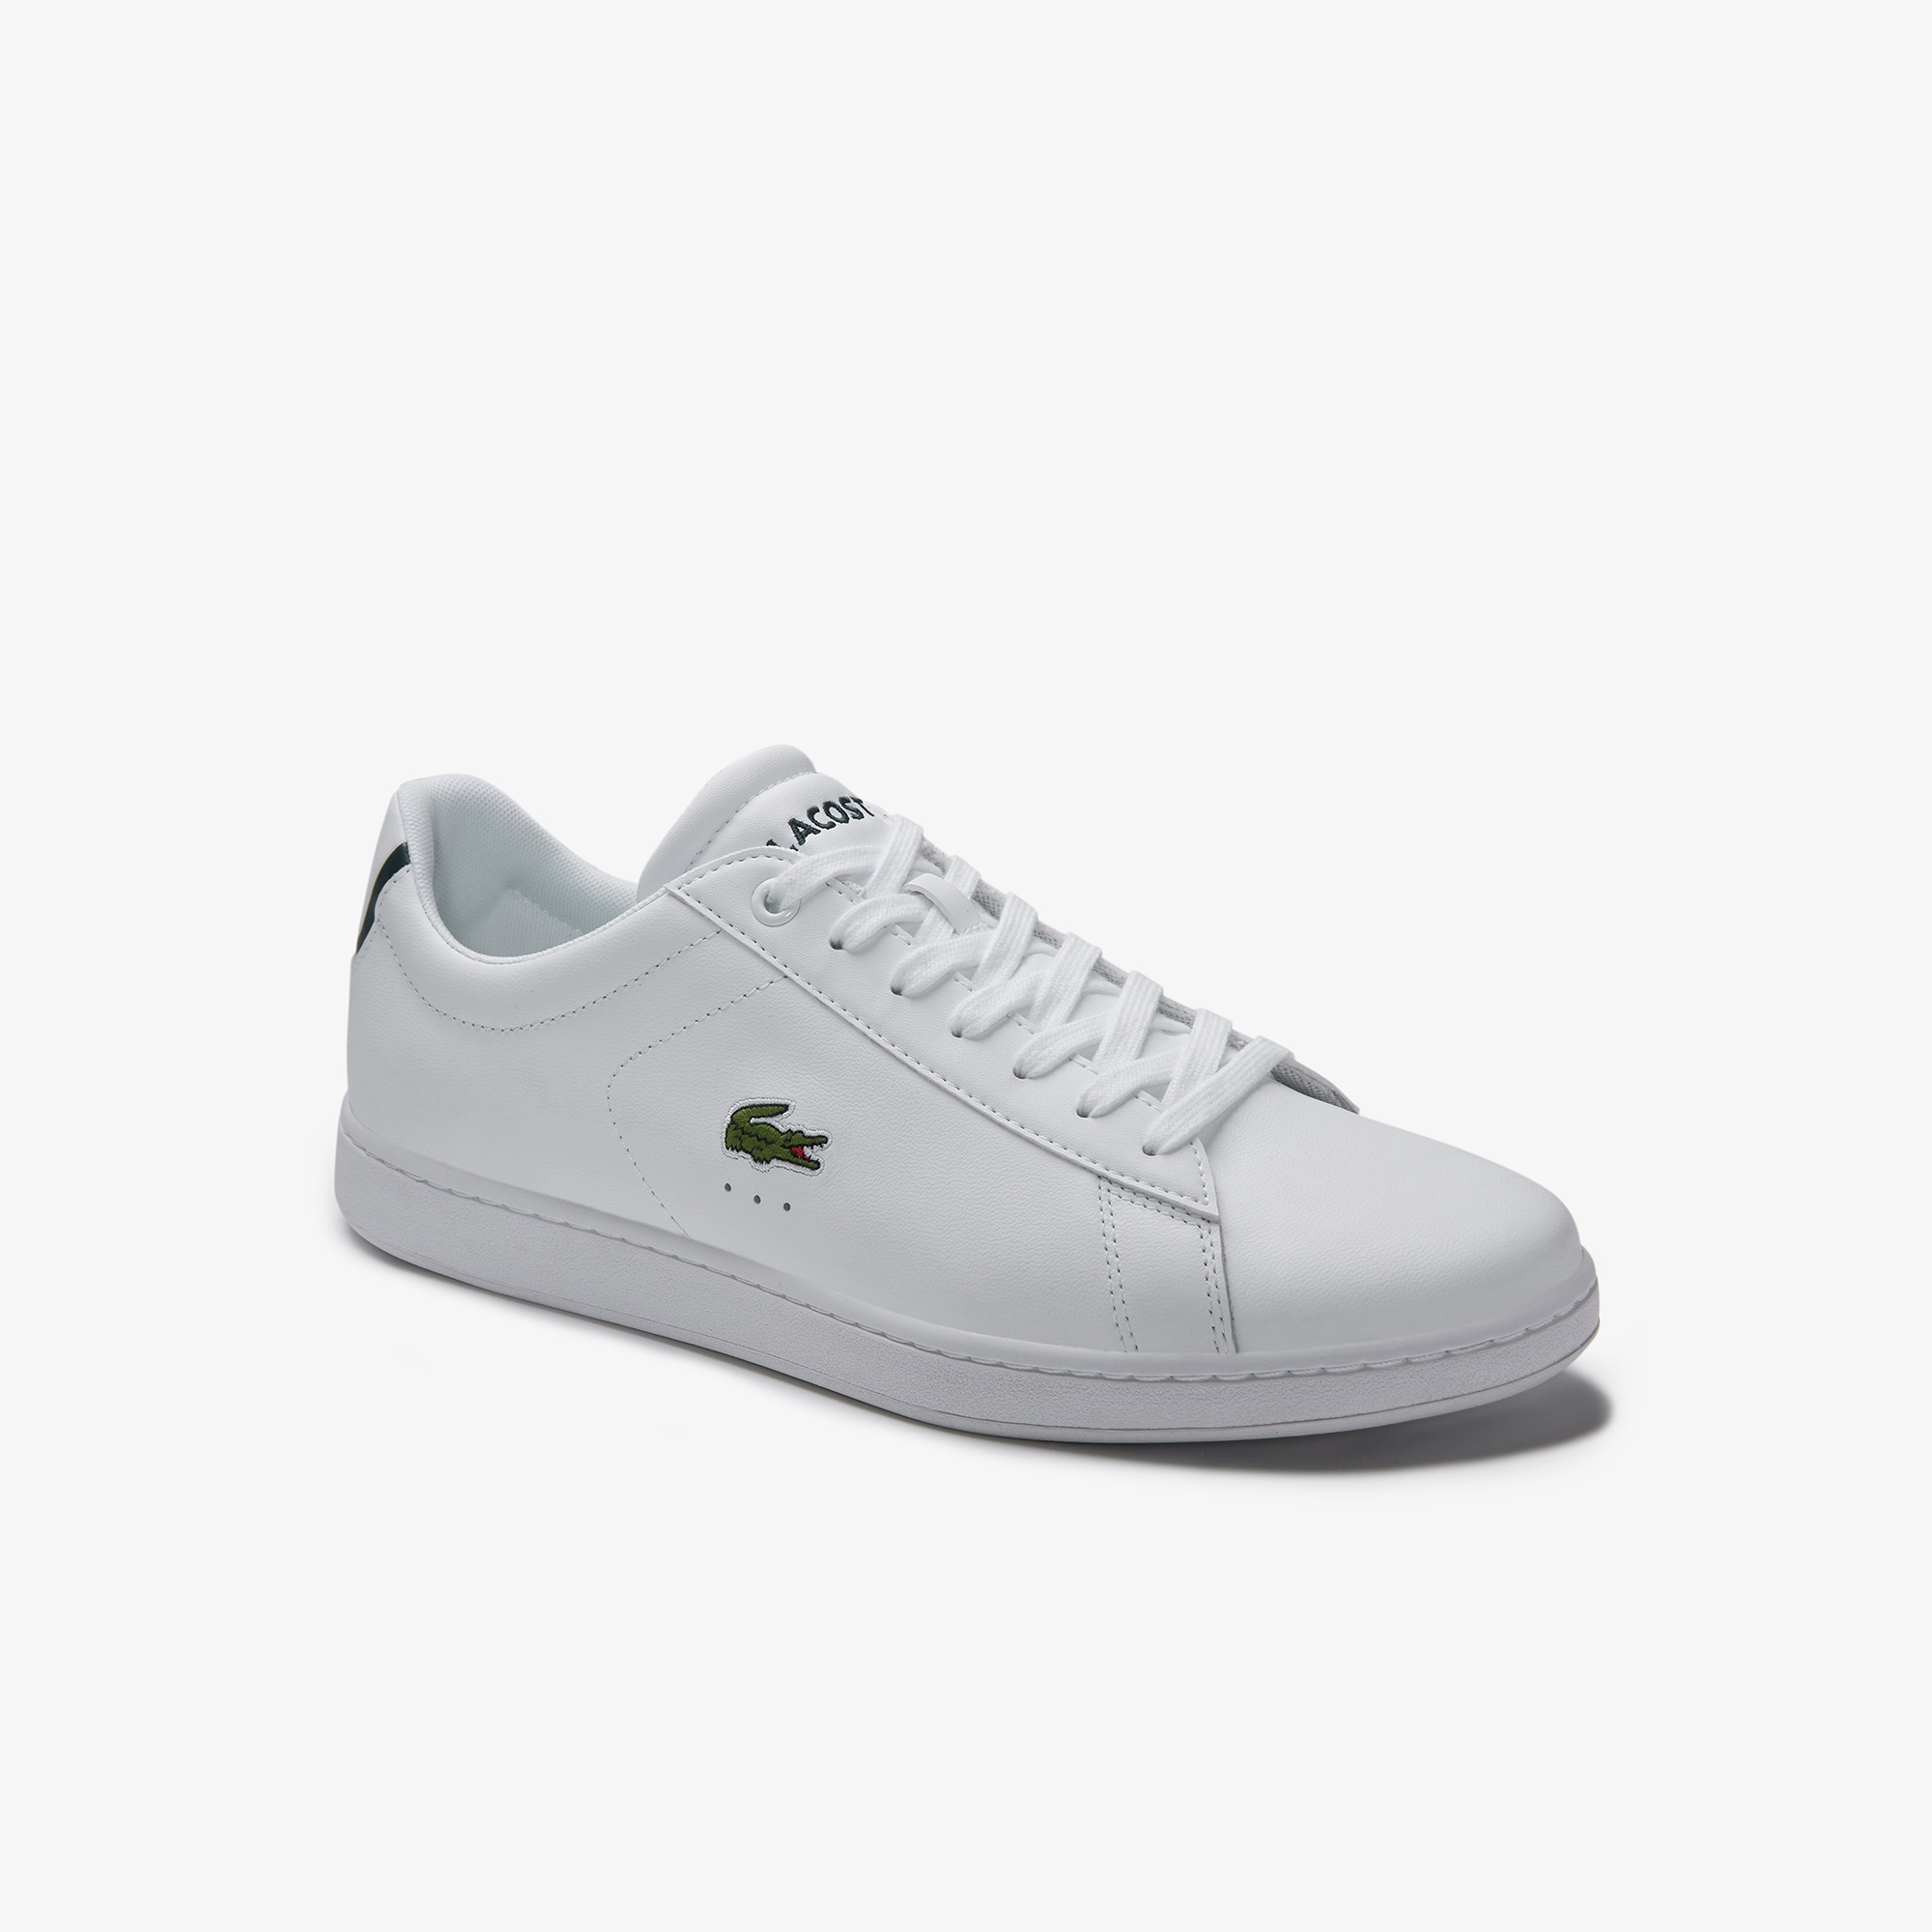 5f35534b9 Men s Carnaby Evo BL Leather Sneakers